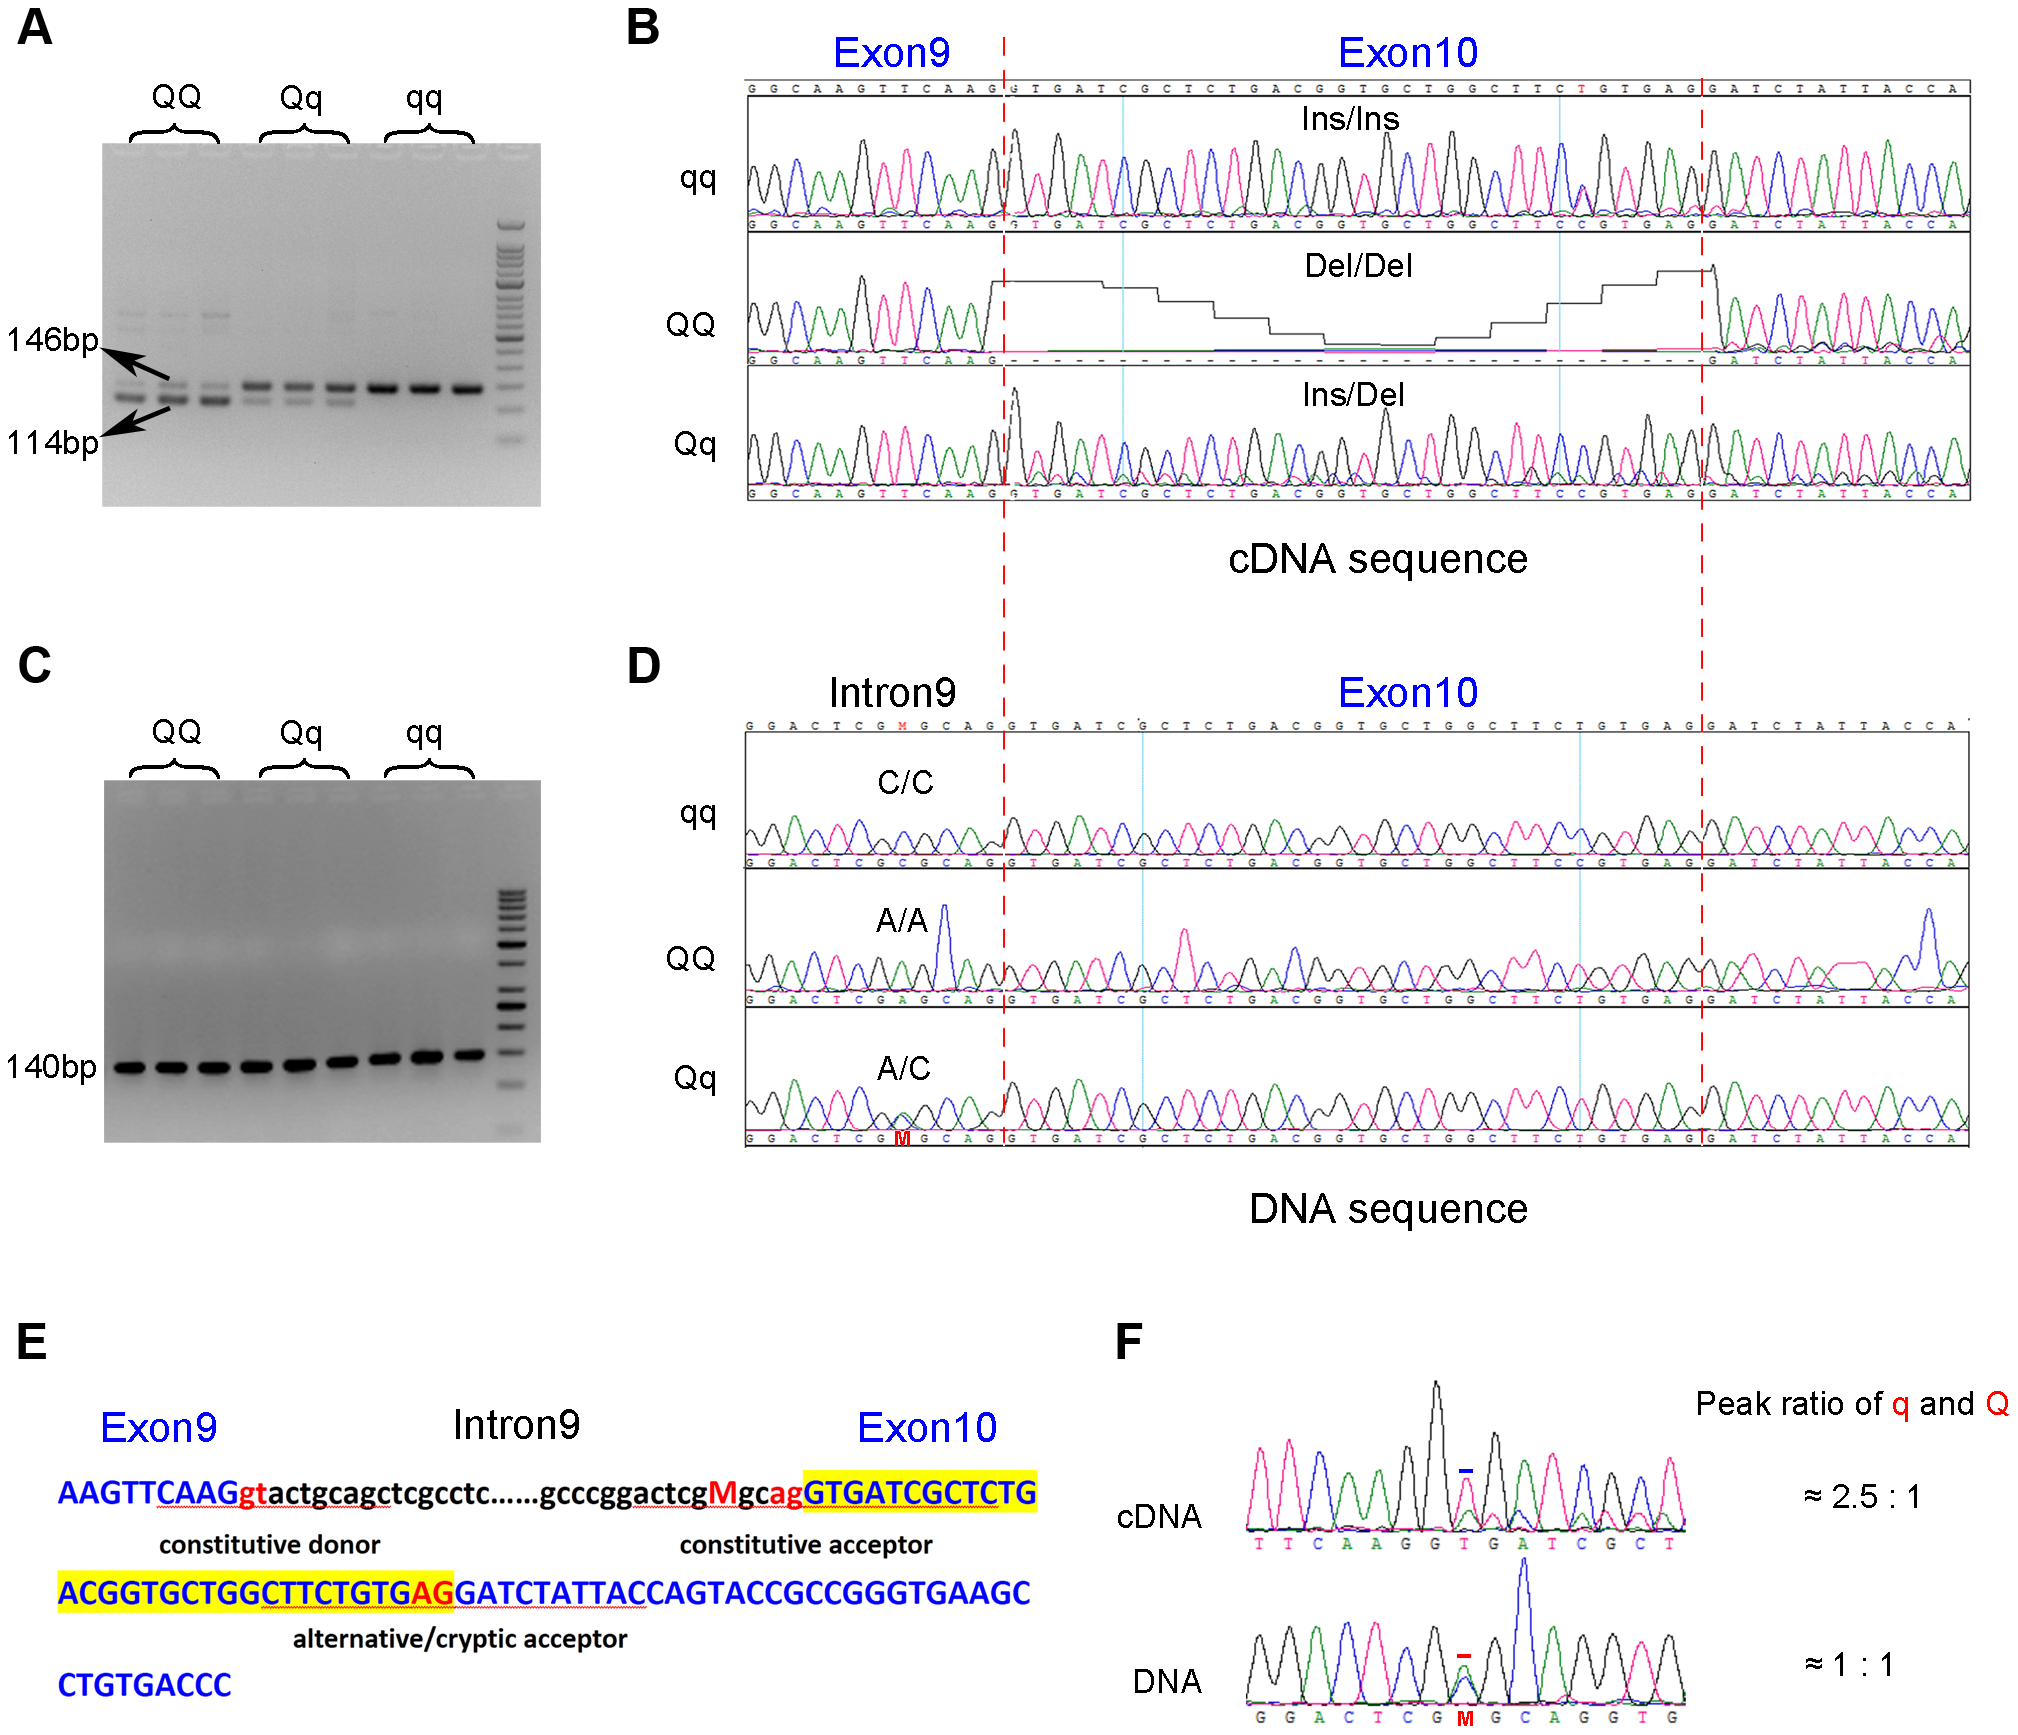 Identification of the g.8283C&gt;A splice mutation in the <i>PHKG1</i> gene.